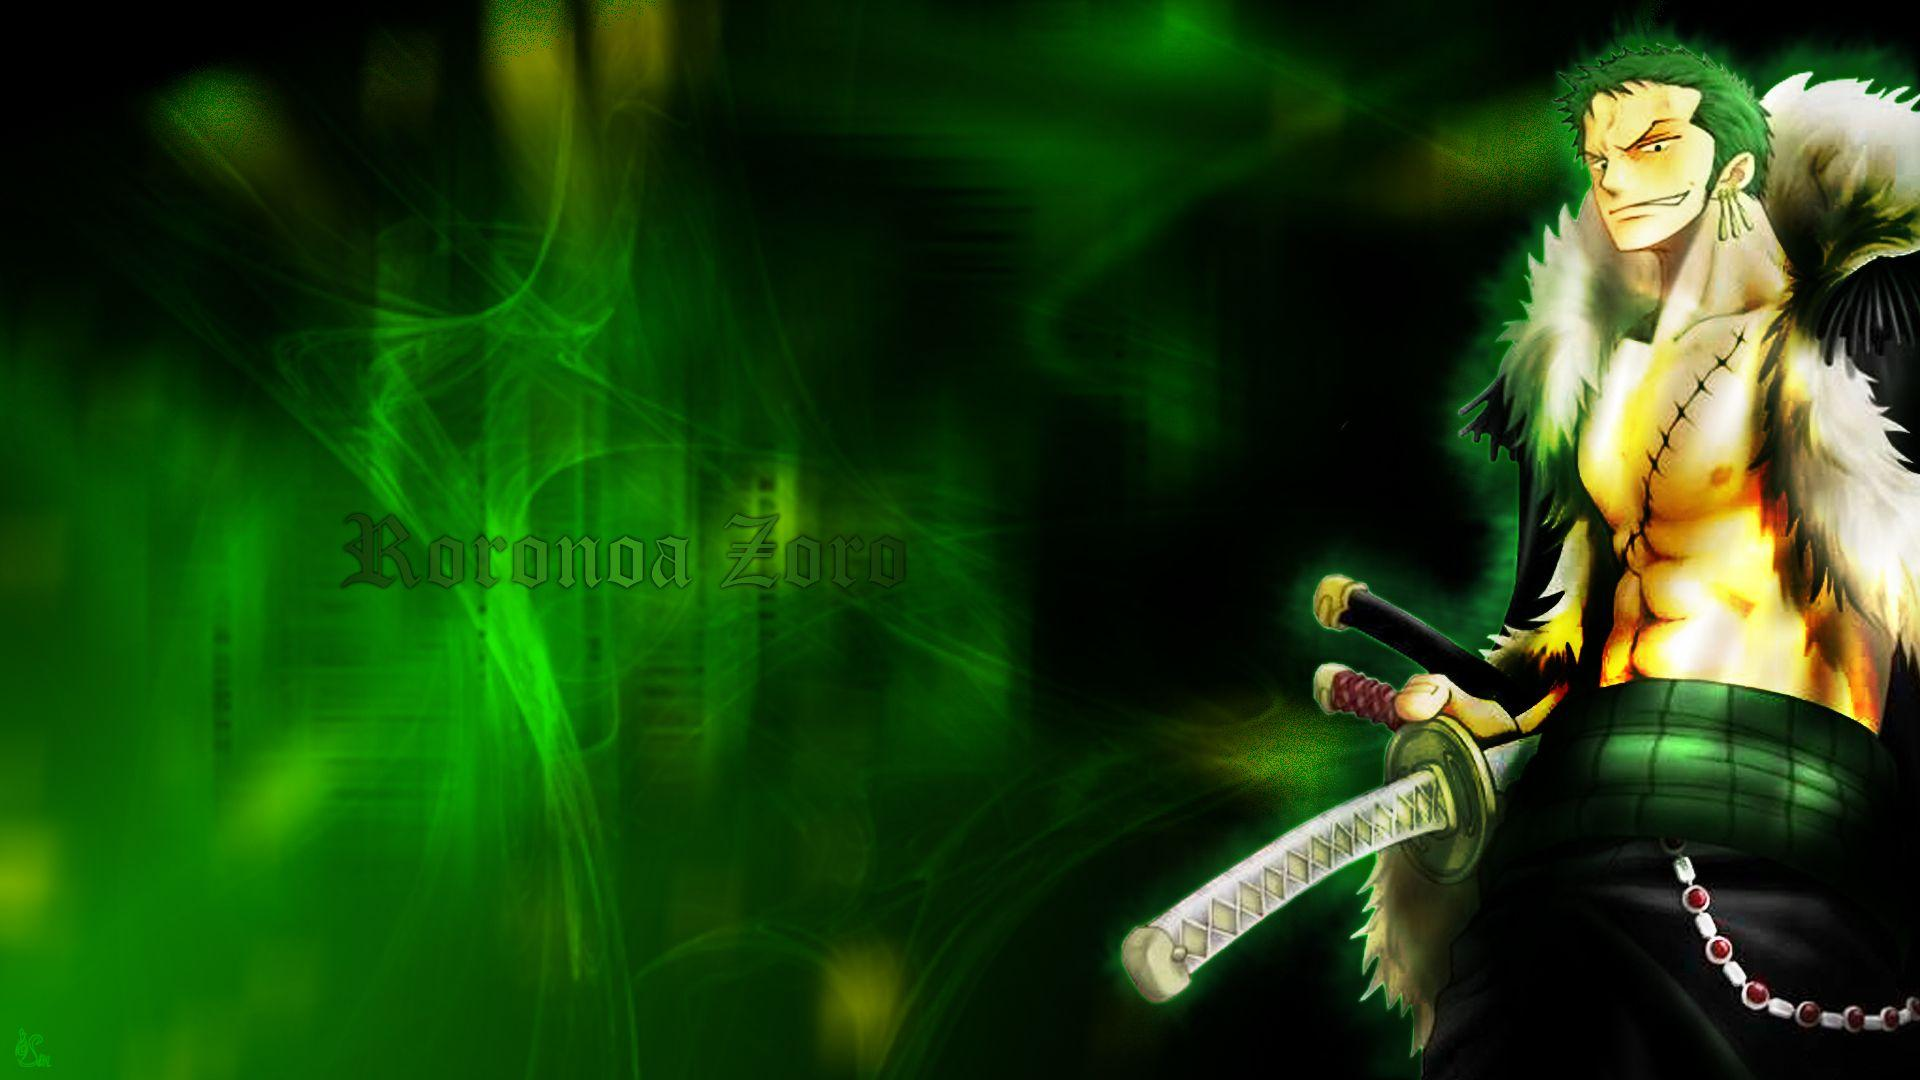 Roronoa Zoro Hd Wallpapers Wallpaper Cave